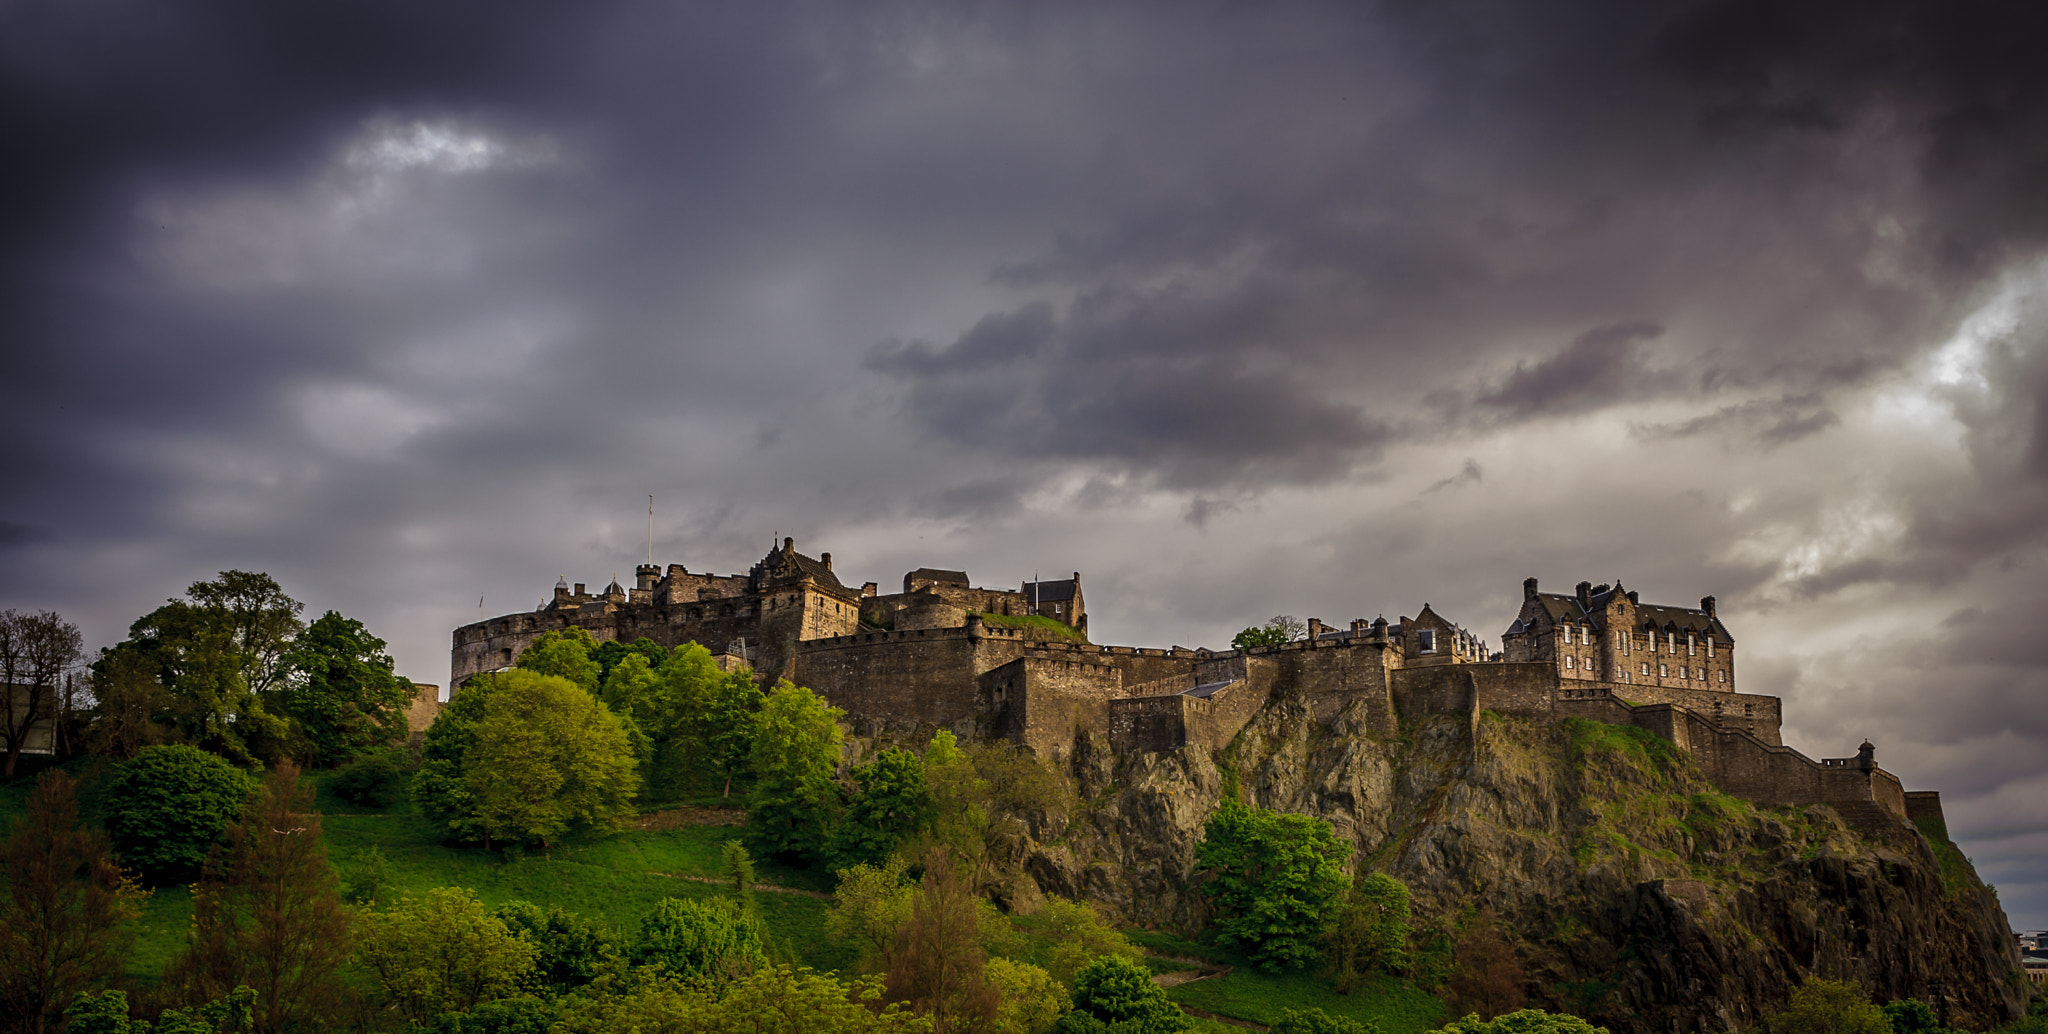 Photograph Edinburgh Castle by blank_re on 500px